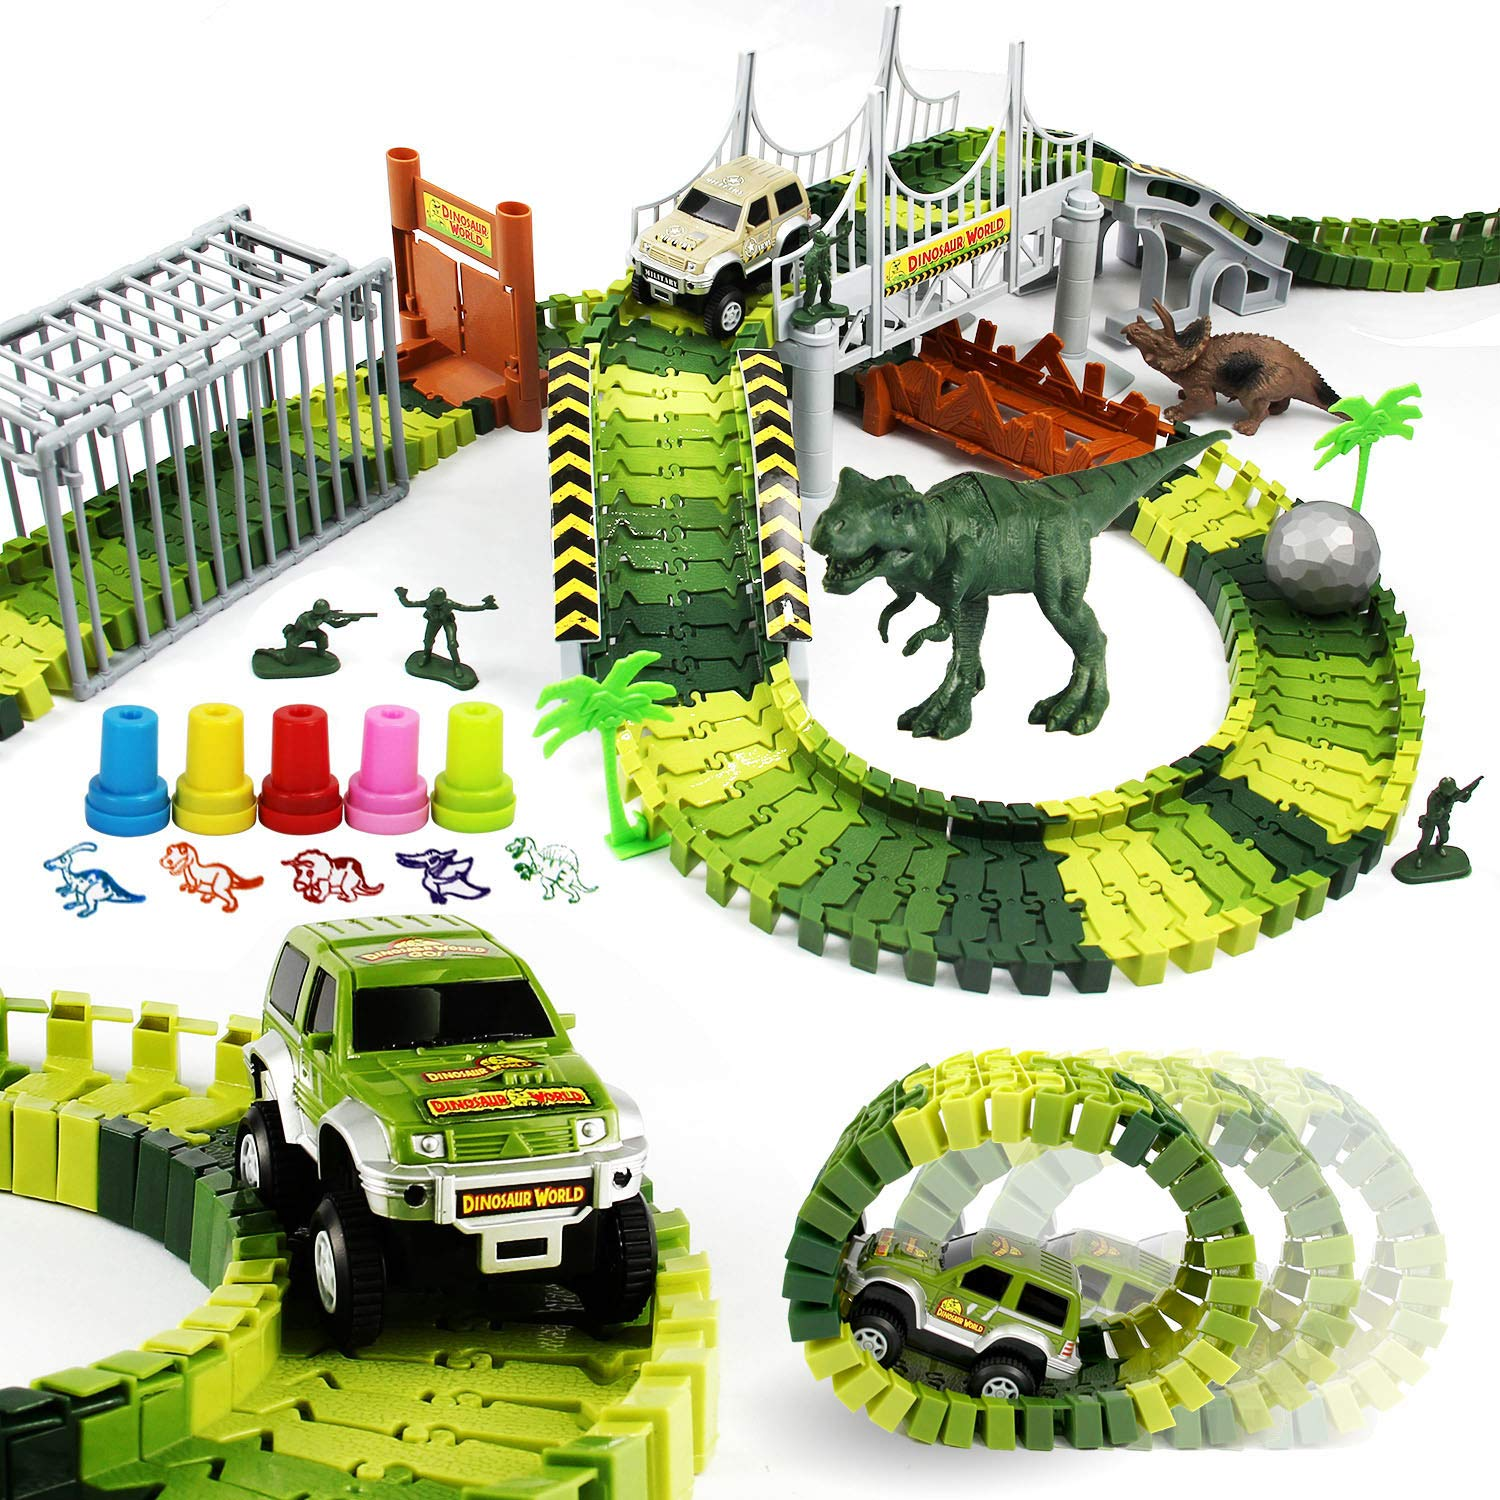 ROSYKIDZ Dinosaur Toys Building Tracks, [175 Pcs Toy Set] Slot Car Race Track Includes 2 Vehicle & 2 Dinosaurs & 10 Stamps for Kids 3 4 5 6 7 8 Years Old Boys Girls Gifts by ROSYKIDZ